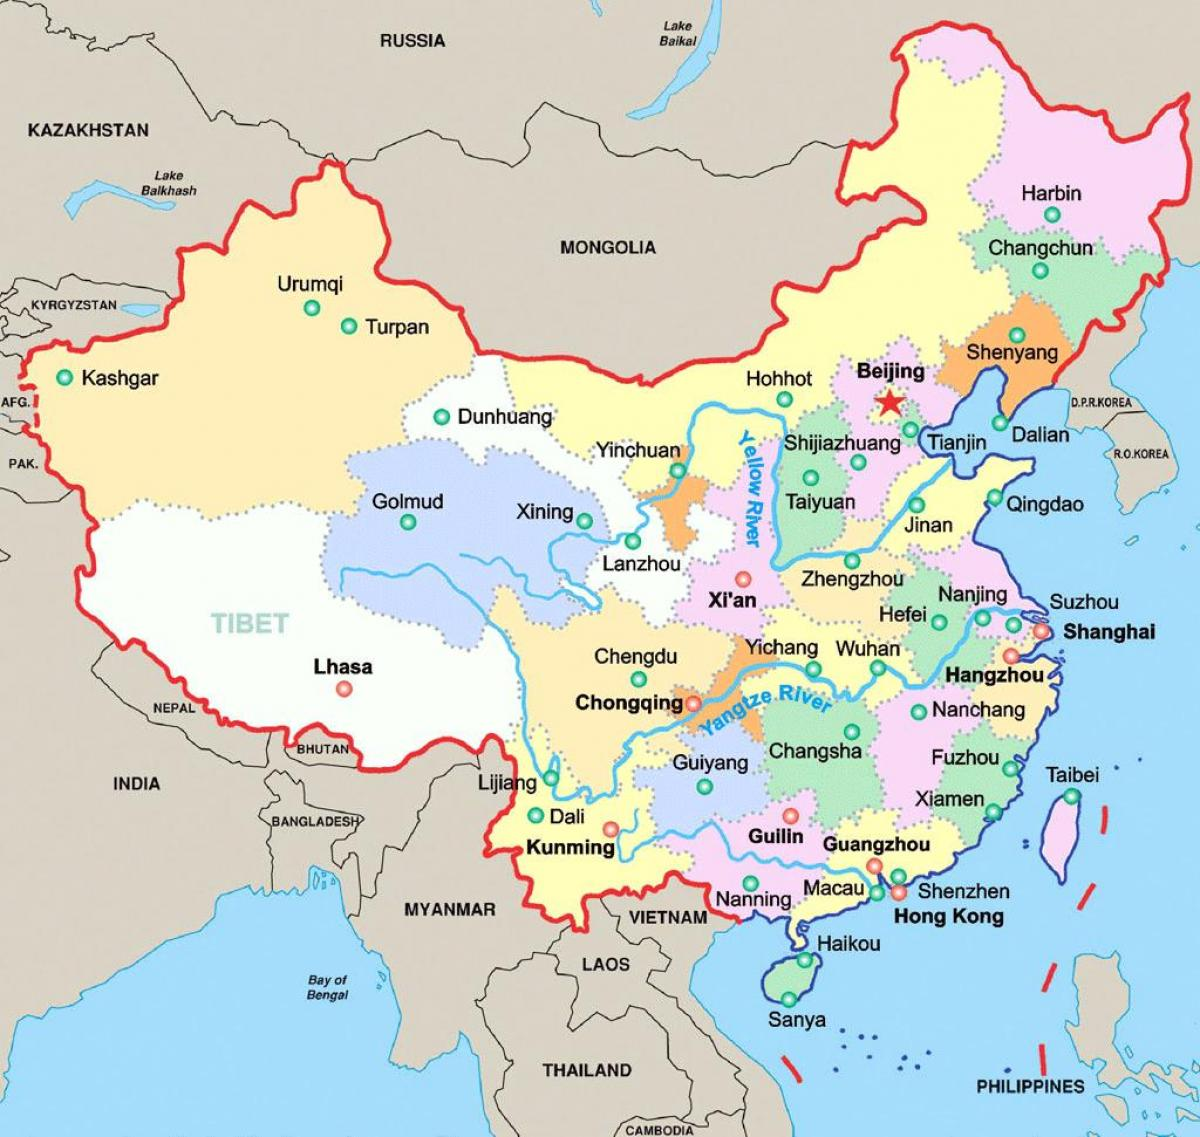 china map major cities Map Of China With Major Cities China Major Cities Map Eastern china map major cities